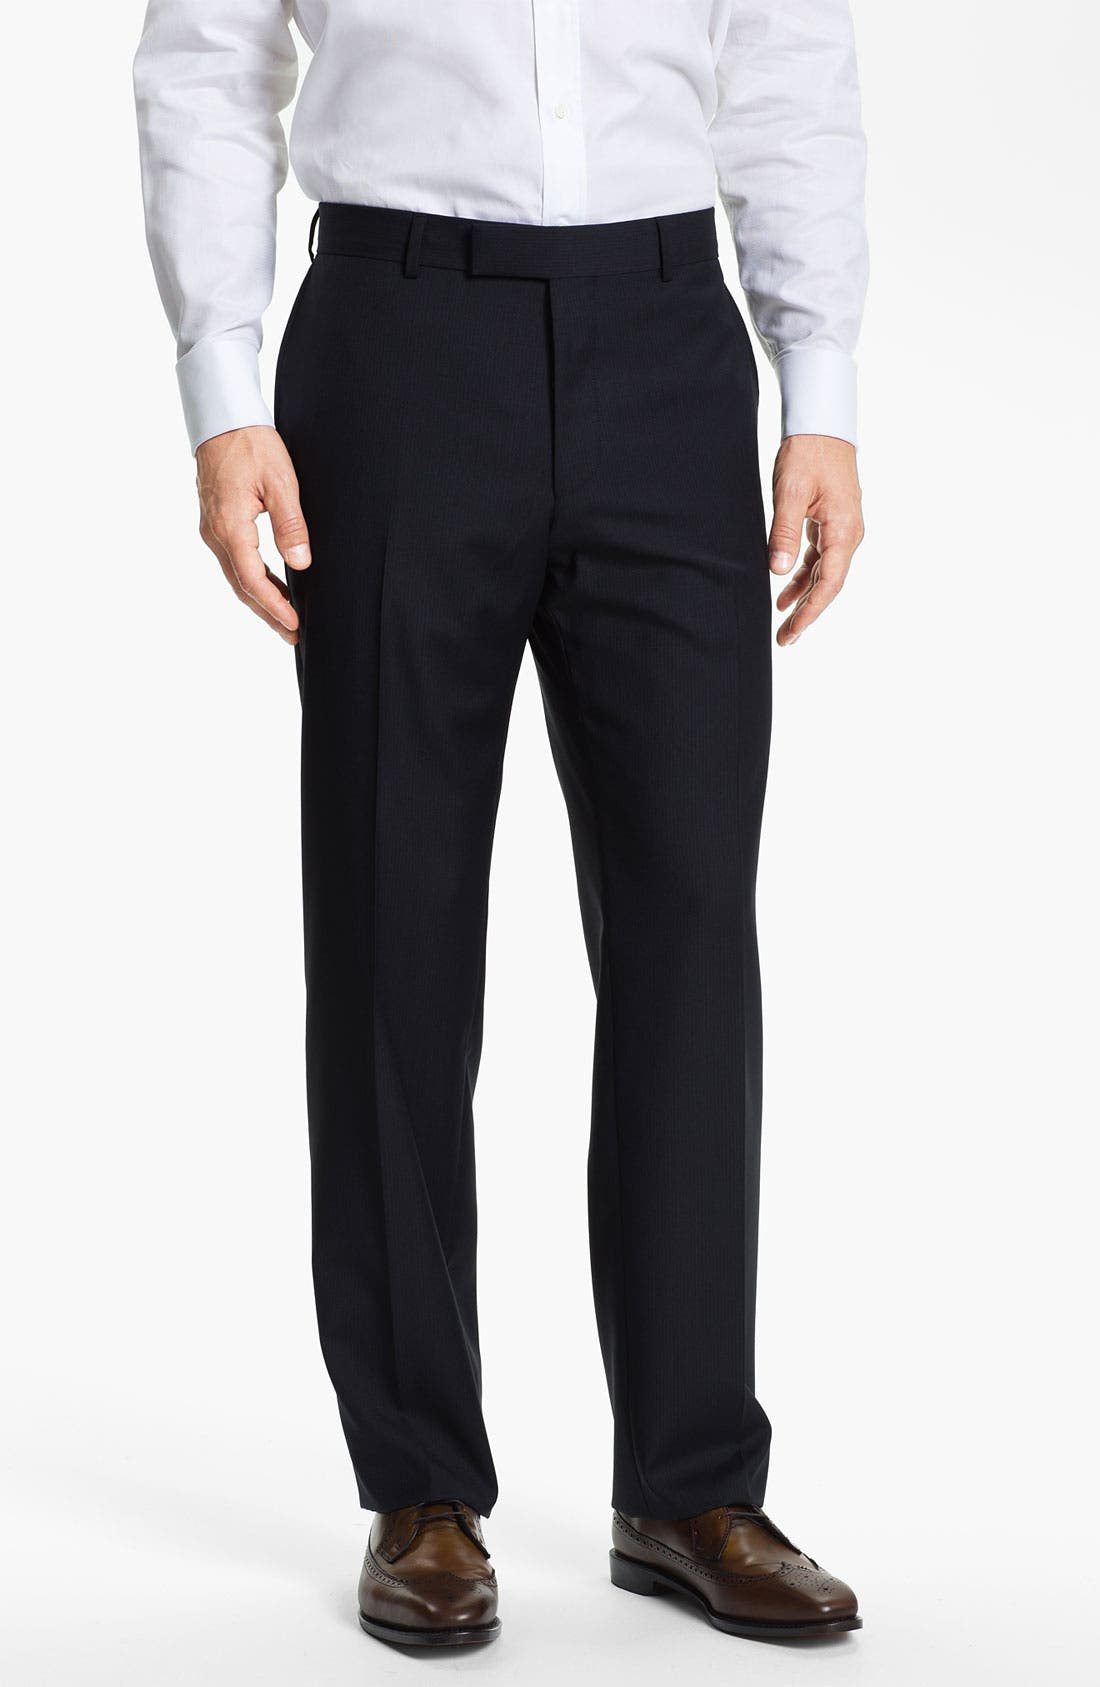 Alternate Image 1 Selected - BOSS Black 'James' Flat Front Trousers